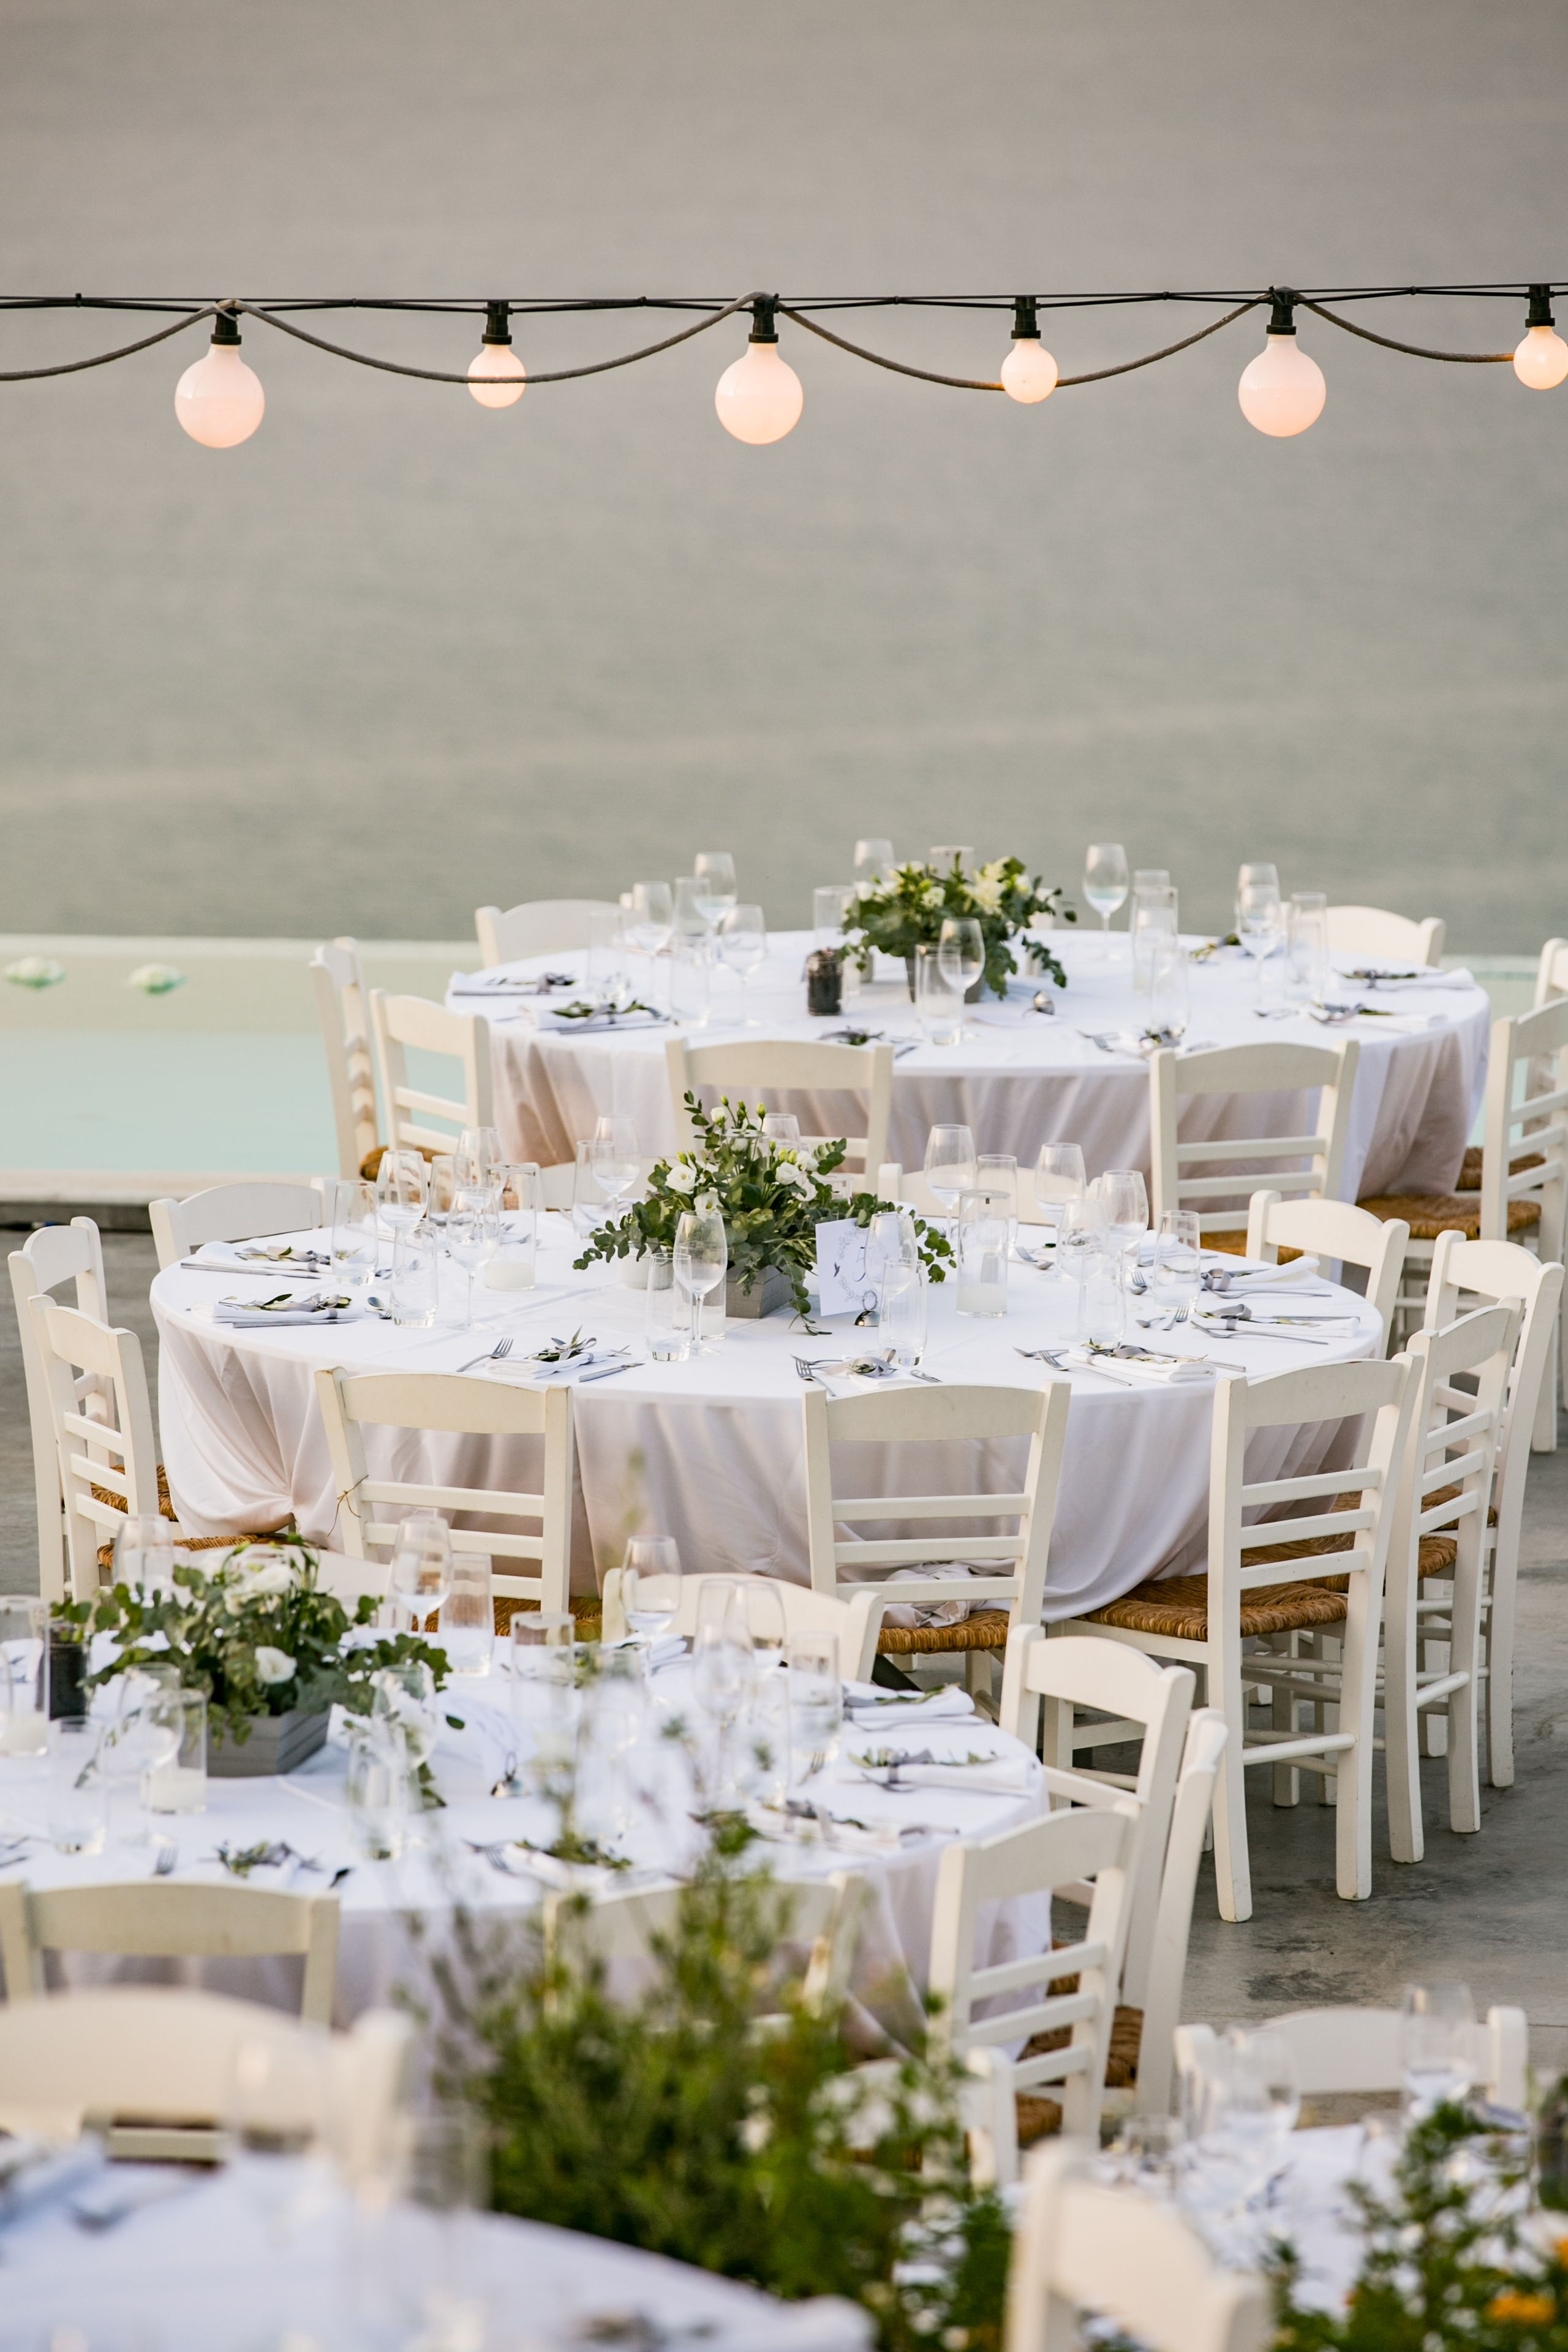 Wedding Venue Greek Wedding Sea View Outdoor Venue Summer